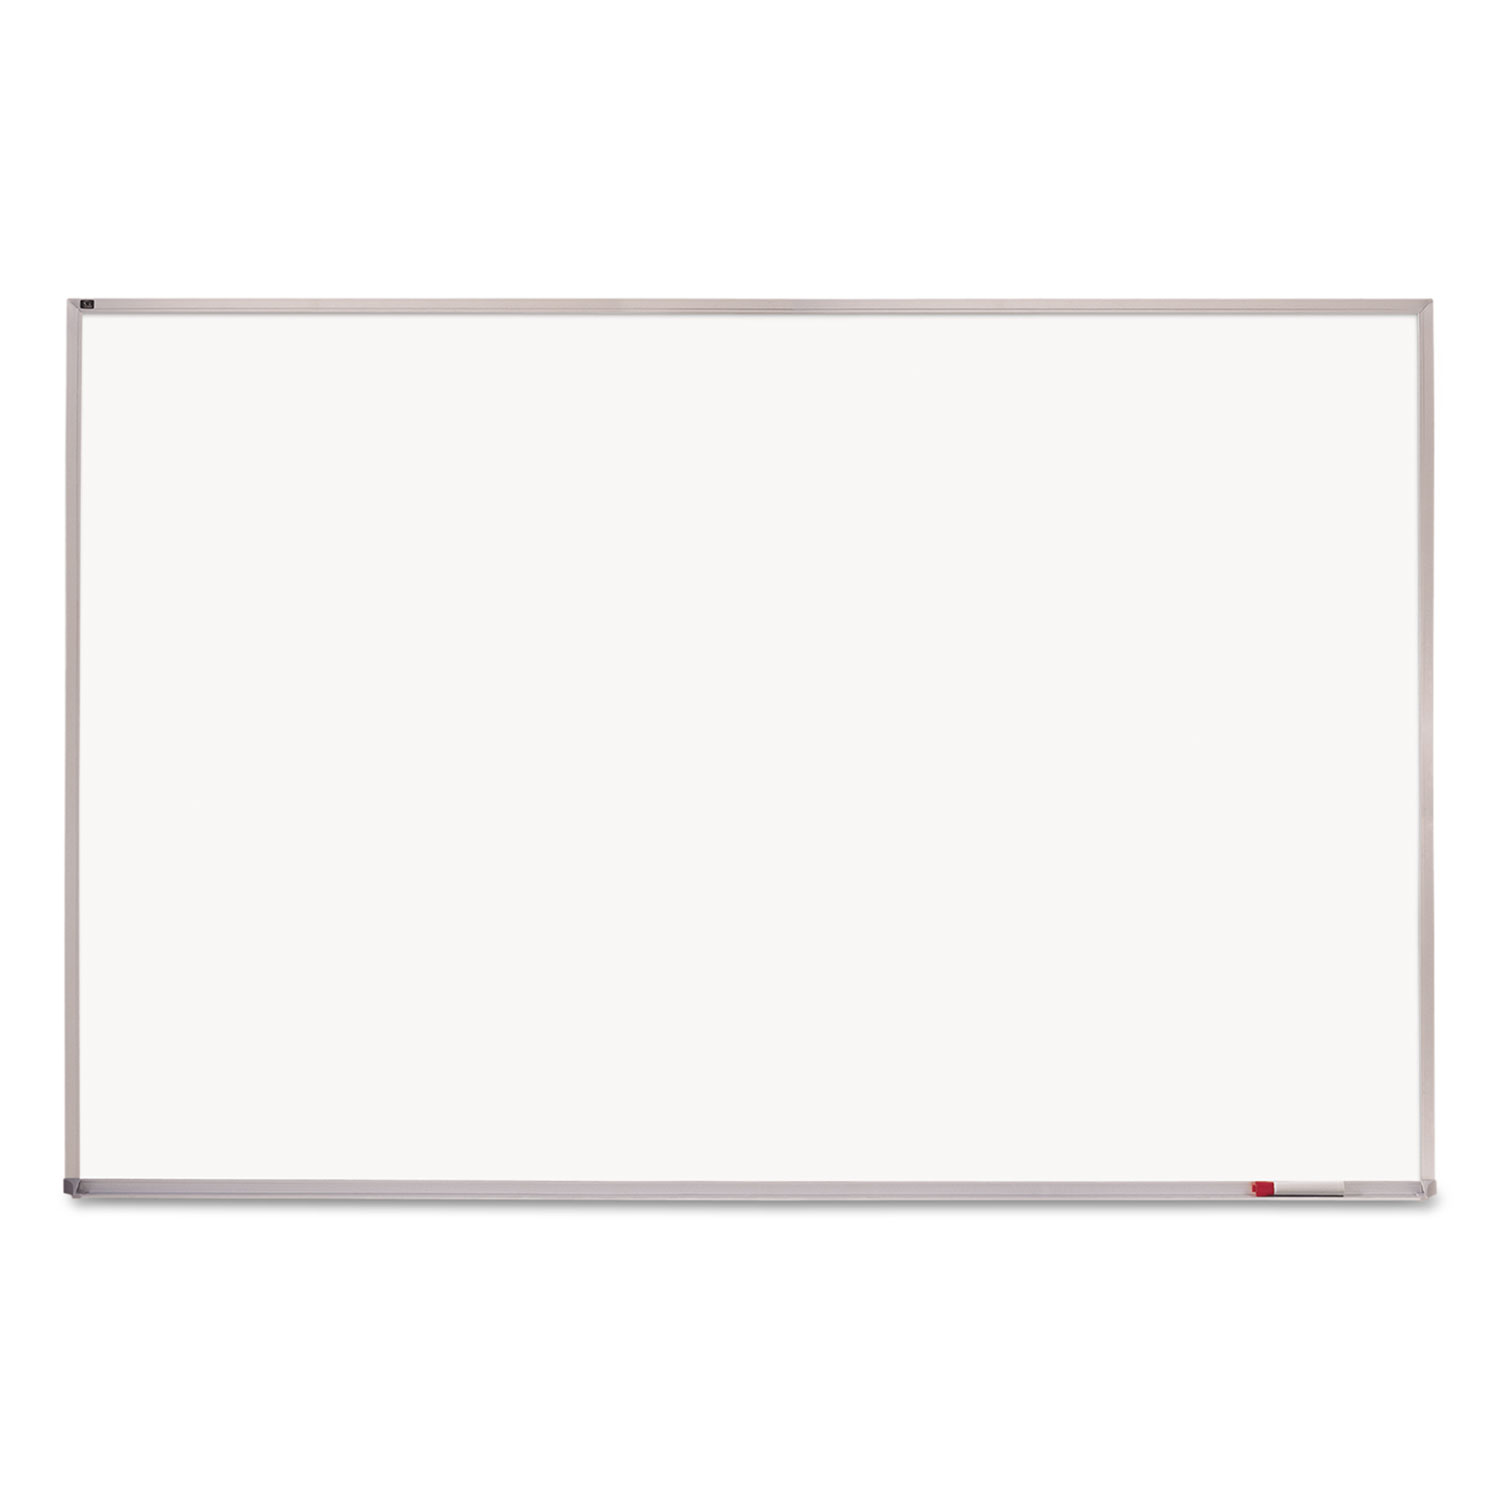 Melamine Whiteboard by Quartet® QRTEMA408 | OnTimeSupplies.com